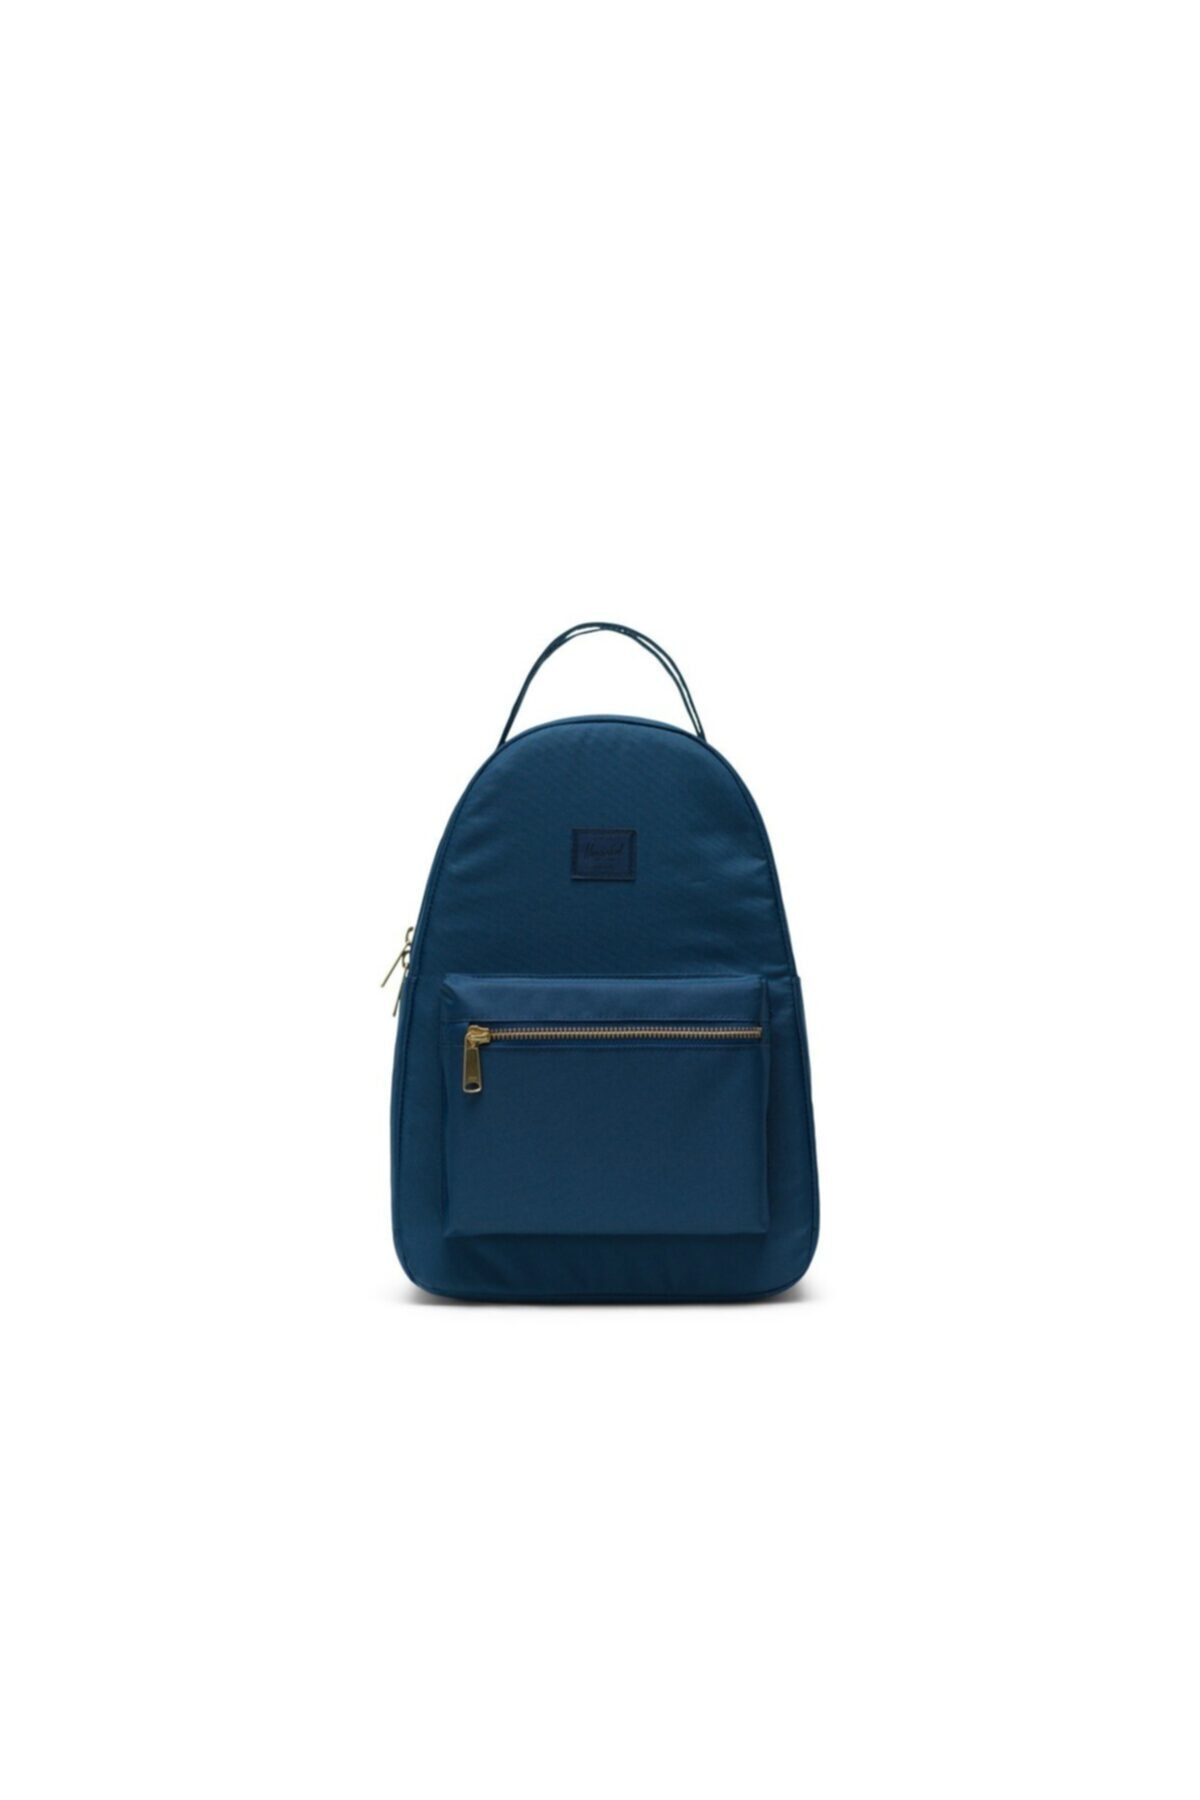 Herschel Supply Co. Herschel Sırt Çantası Nova Light Navy 1